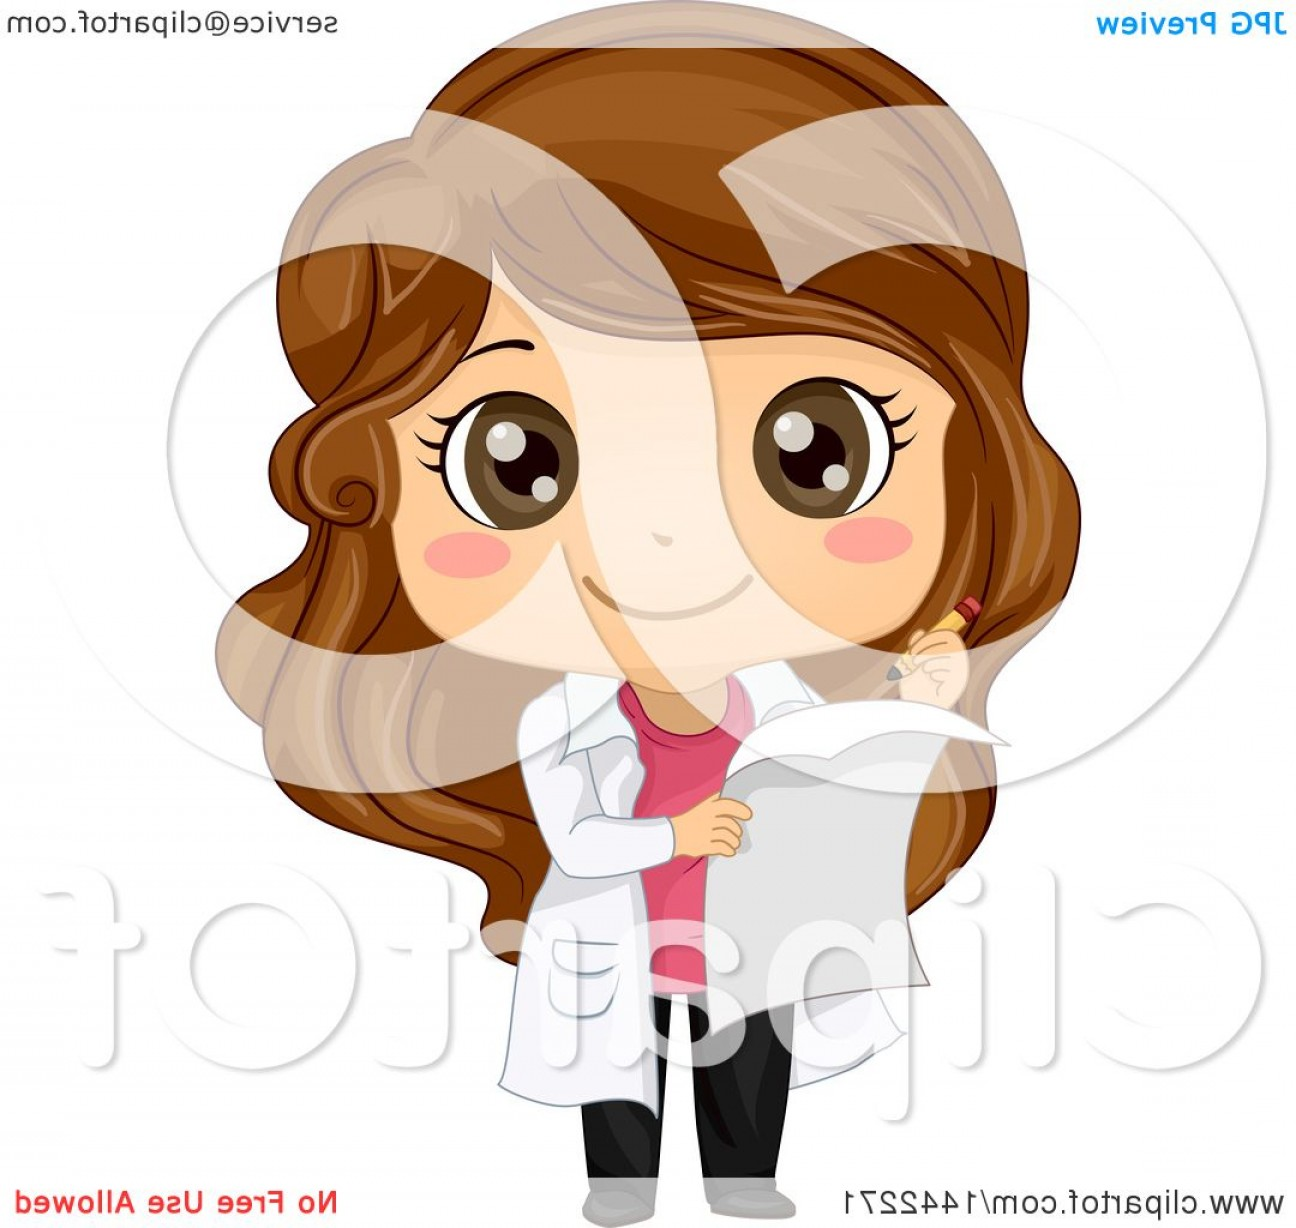 Lab Coat Cartoon Vector: Cartoon Brunette Caucasian Girl In A White Science Lab Coat Taking Notes